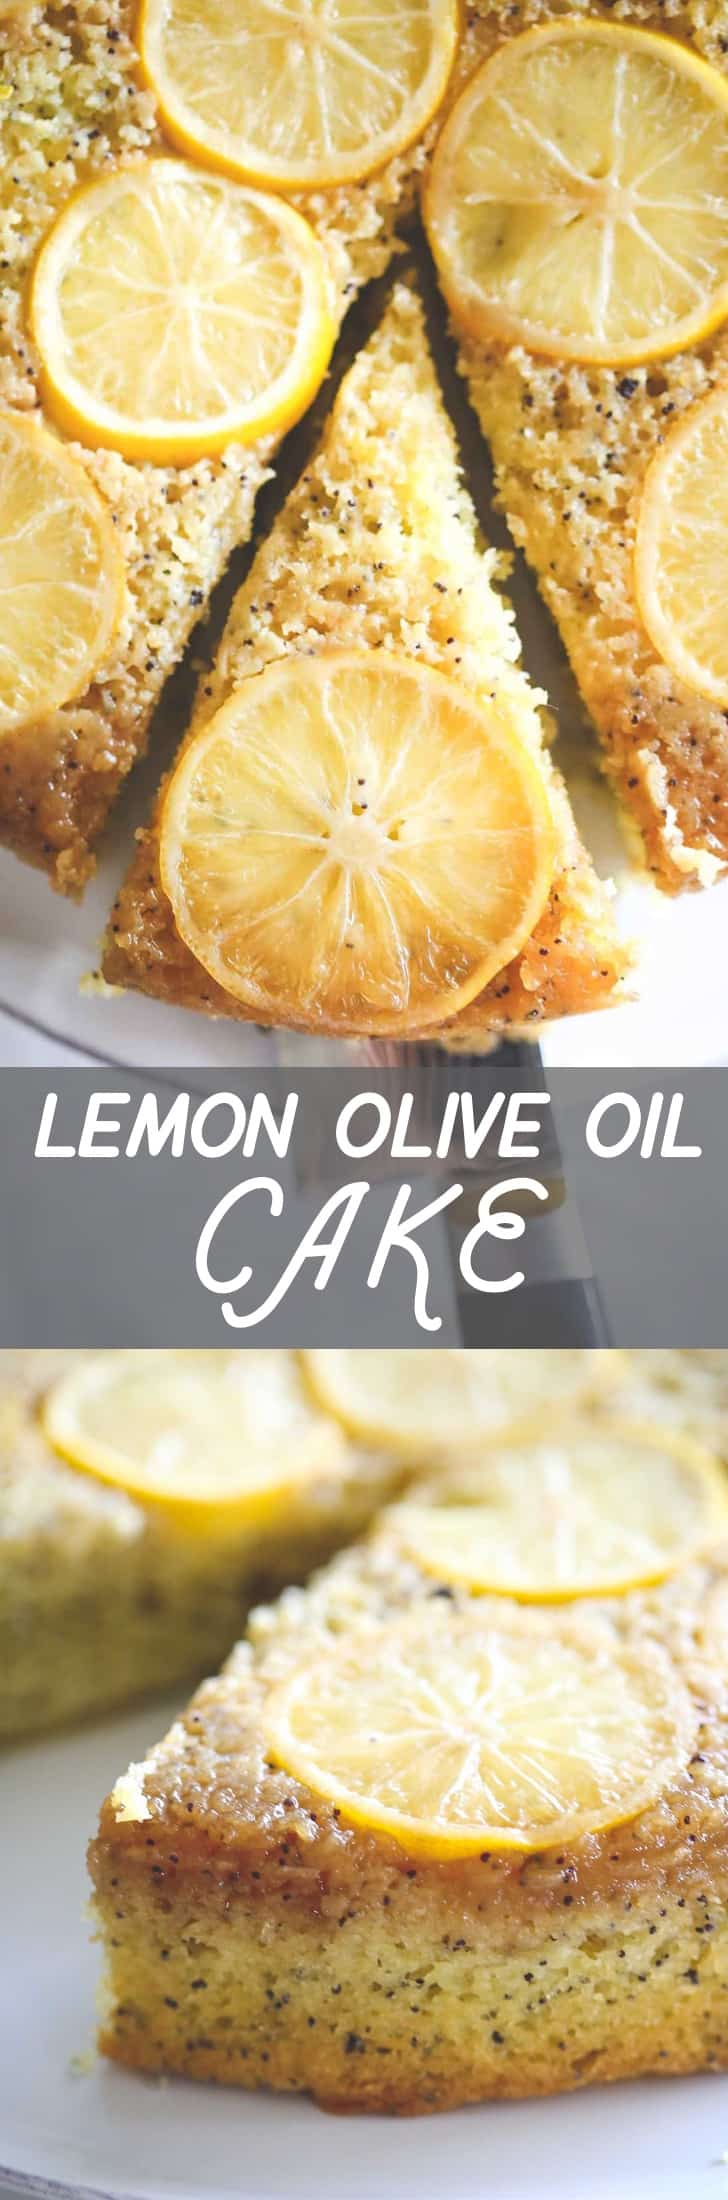 Lemon Olive Oil Cake - Baking this lemon and olive oil cake in the classic method of upside down cakes makes for a pretty presentation. Simple, light and fresh, this cake stores well in the fridge for a 2-3 days, making it a perfect afternoon dessert pick-me-up alongside a cup of tea or coffee.